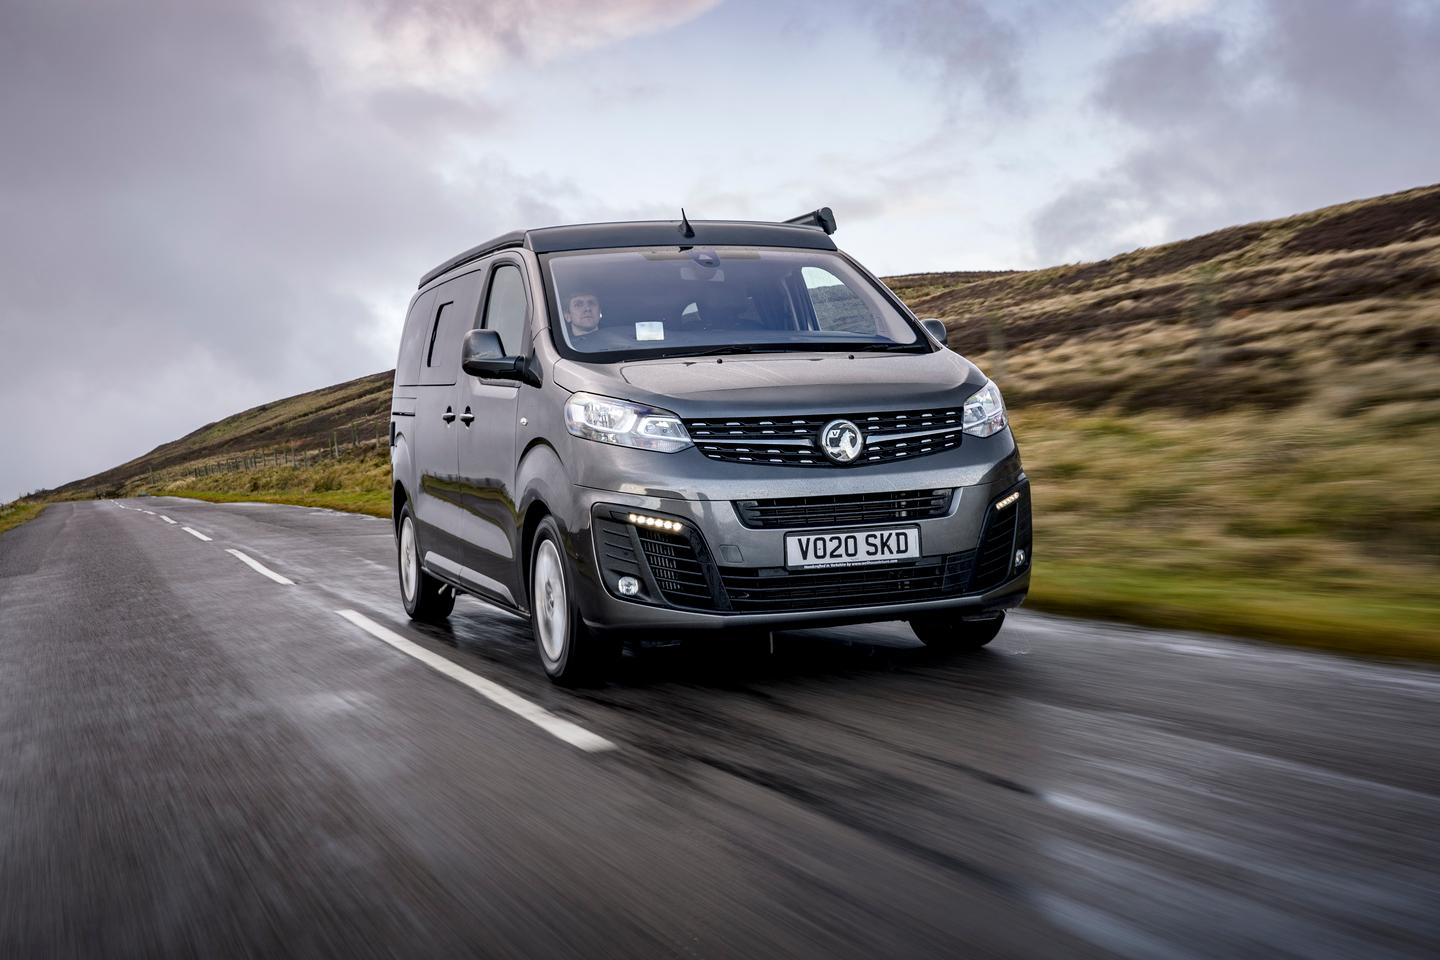 The Vauxhall Vivaro Elite Campervan will eventually be available with option of 2.0-liter diesel engine or electric drive